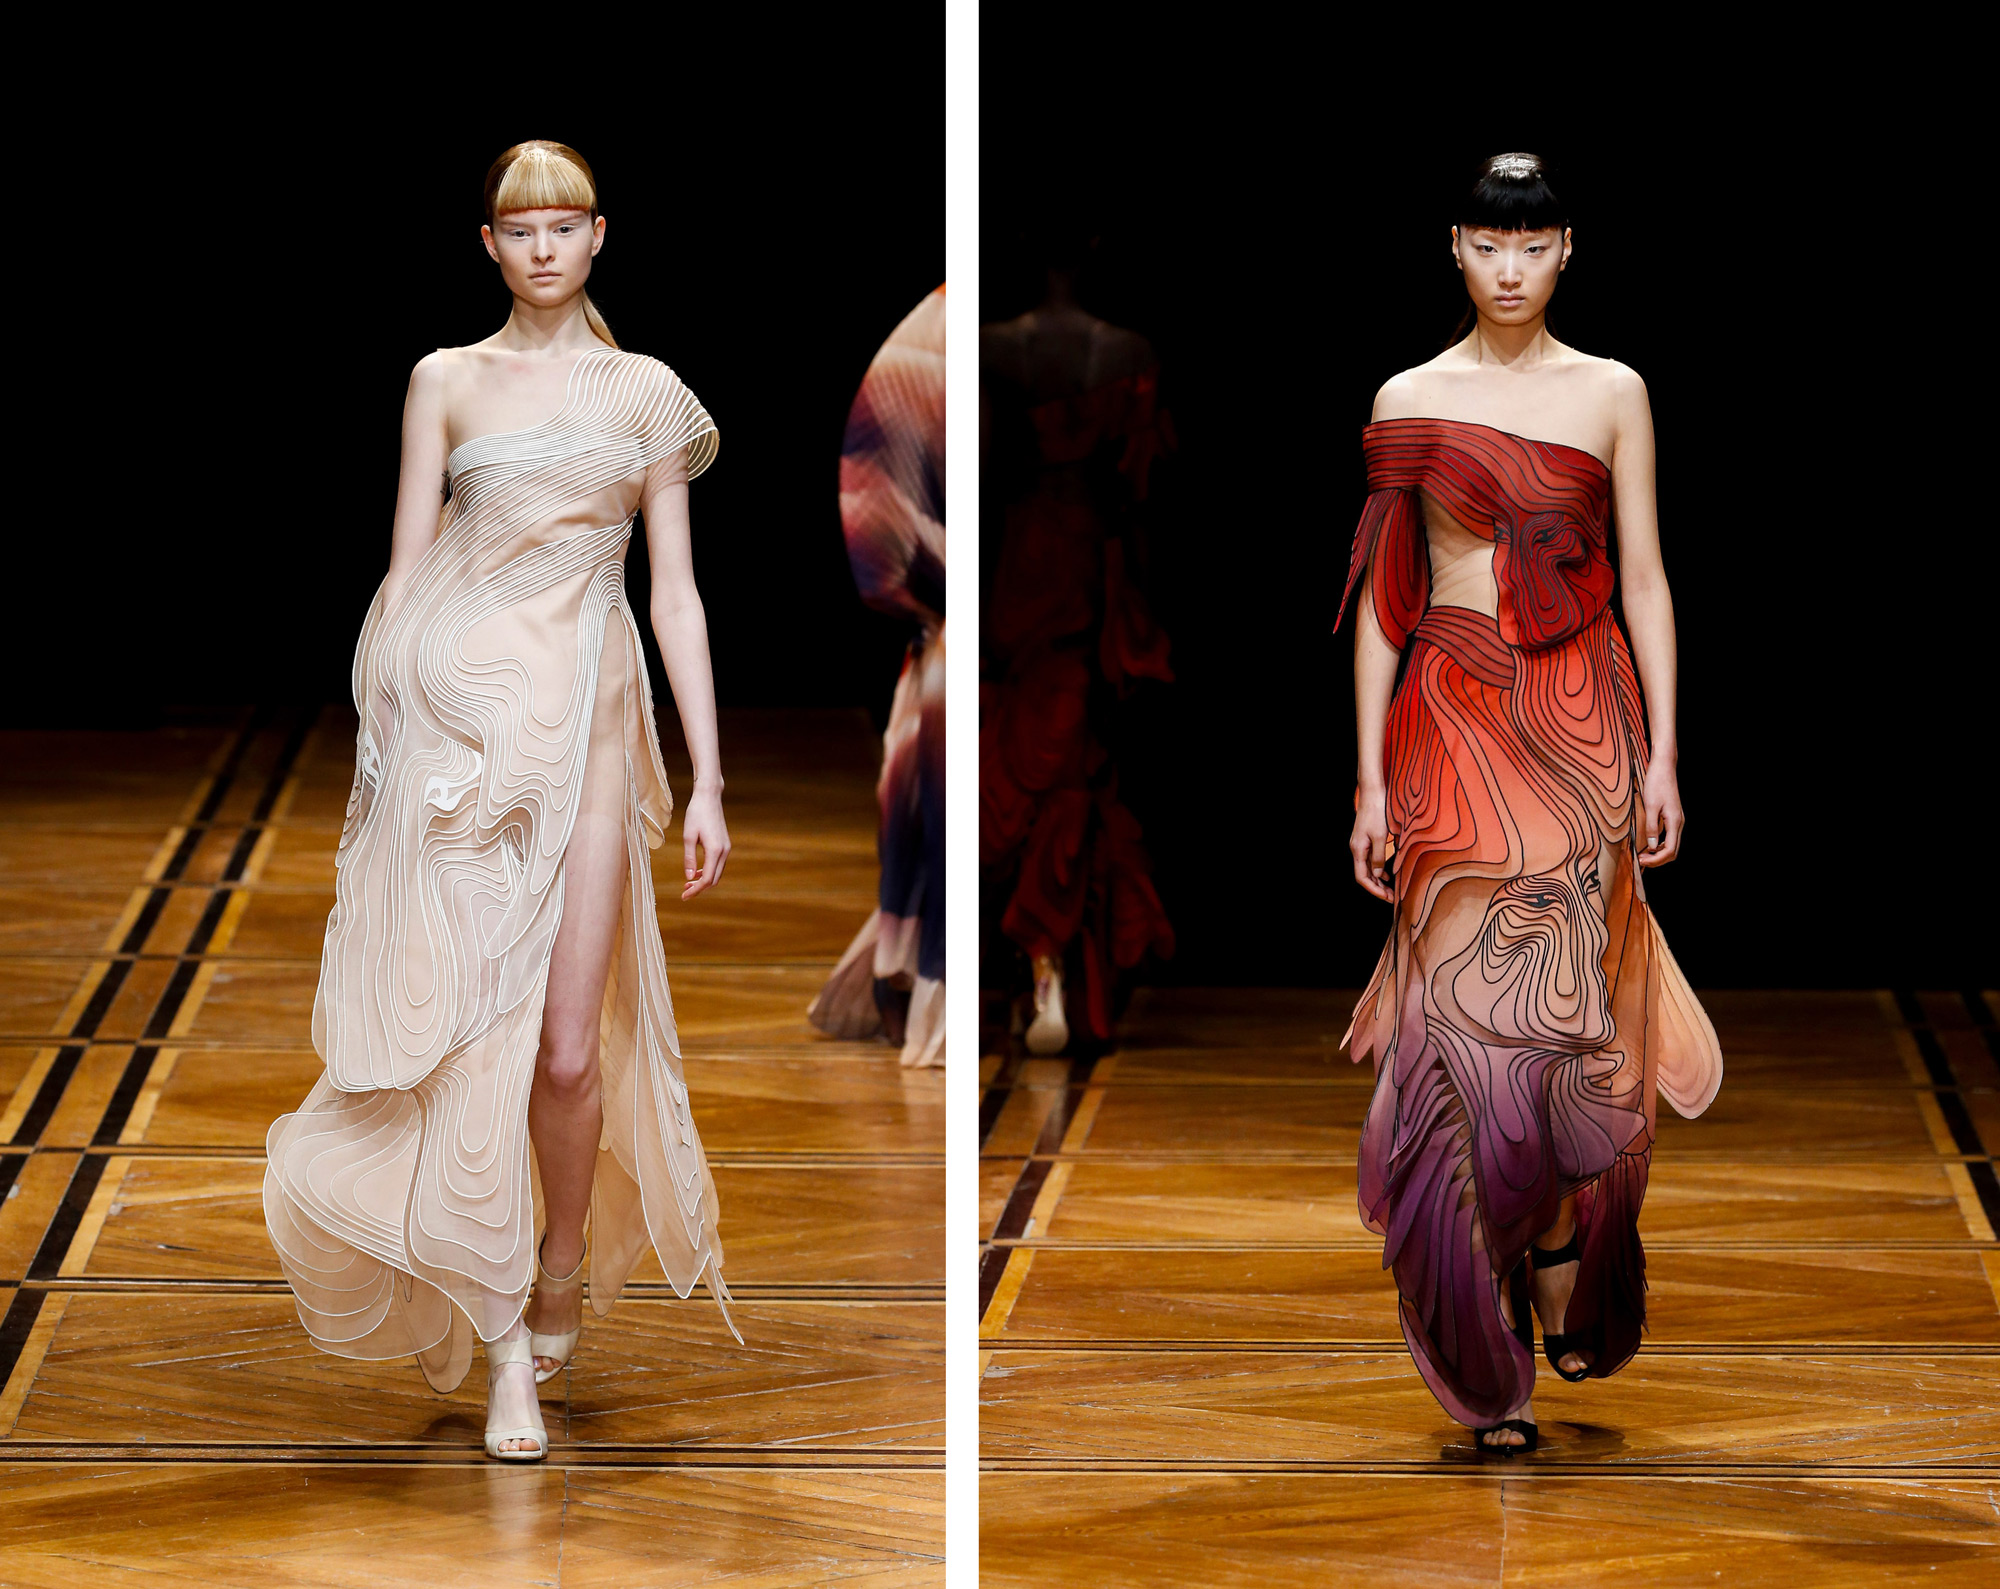 Birds and Faces Emerge From Dizzying Multi-Layered Gowns